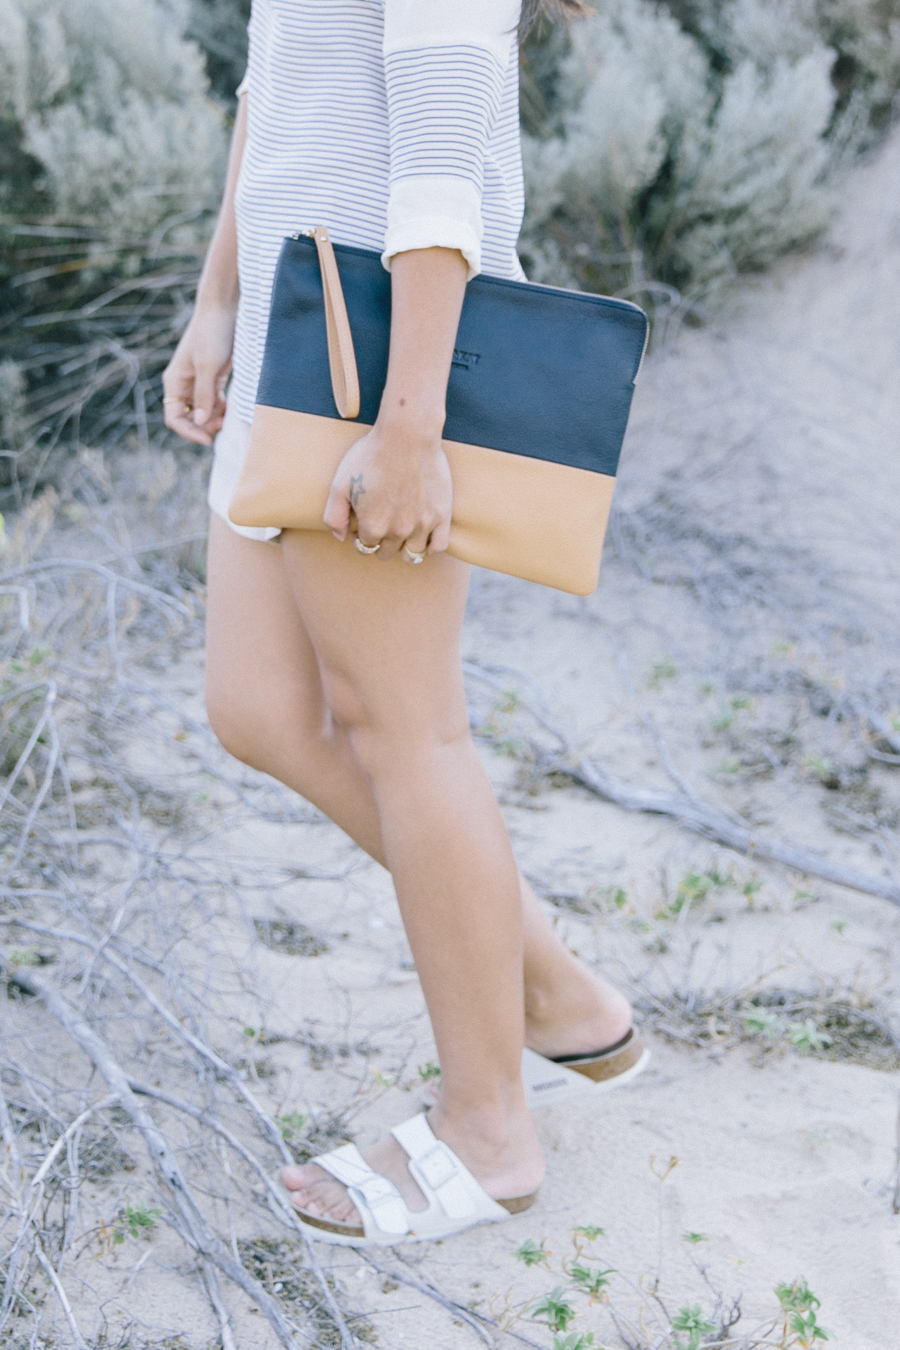 Leather two tone clutch. White Birkenstocks outfit.